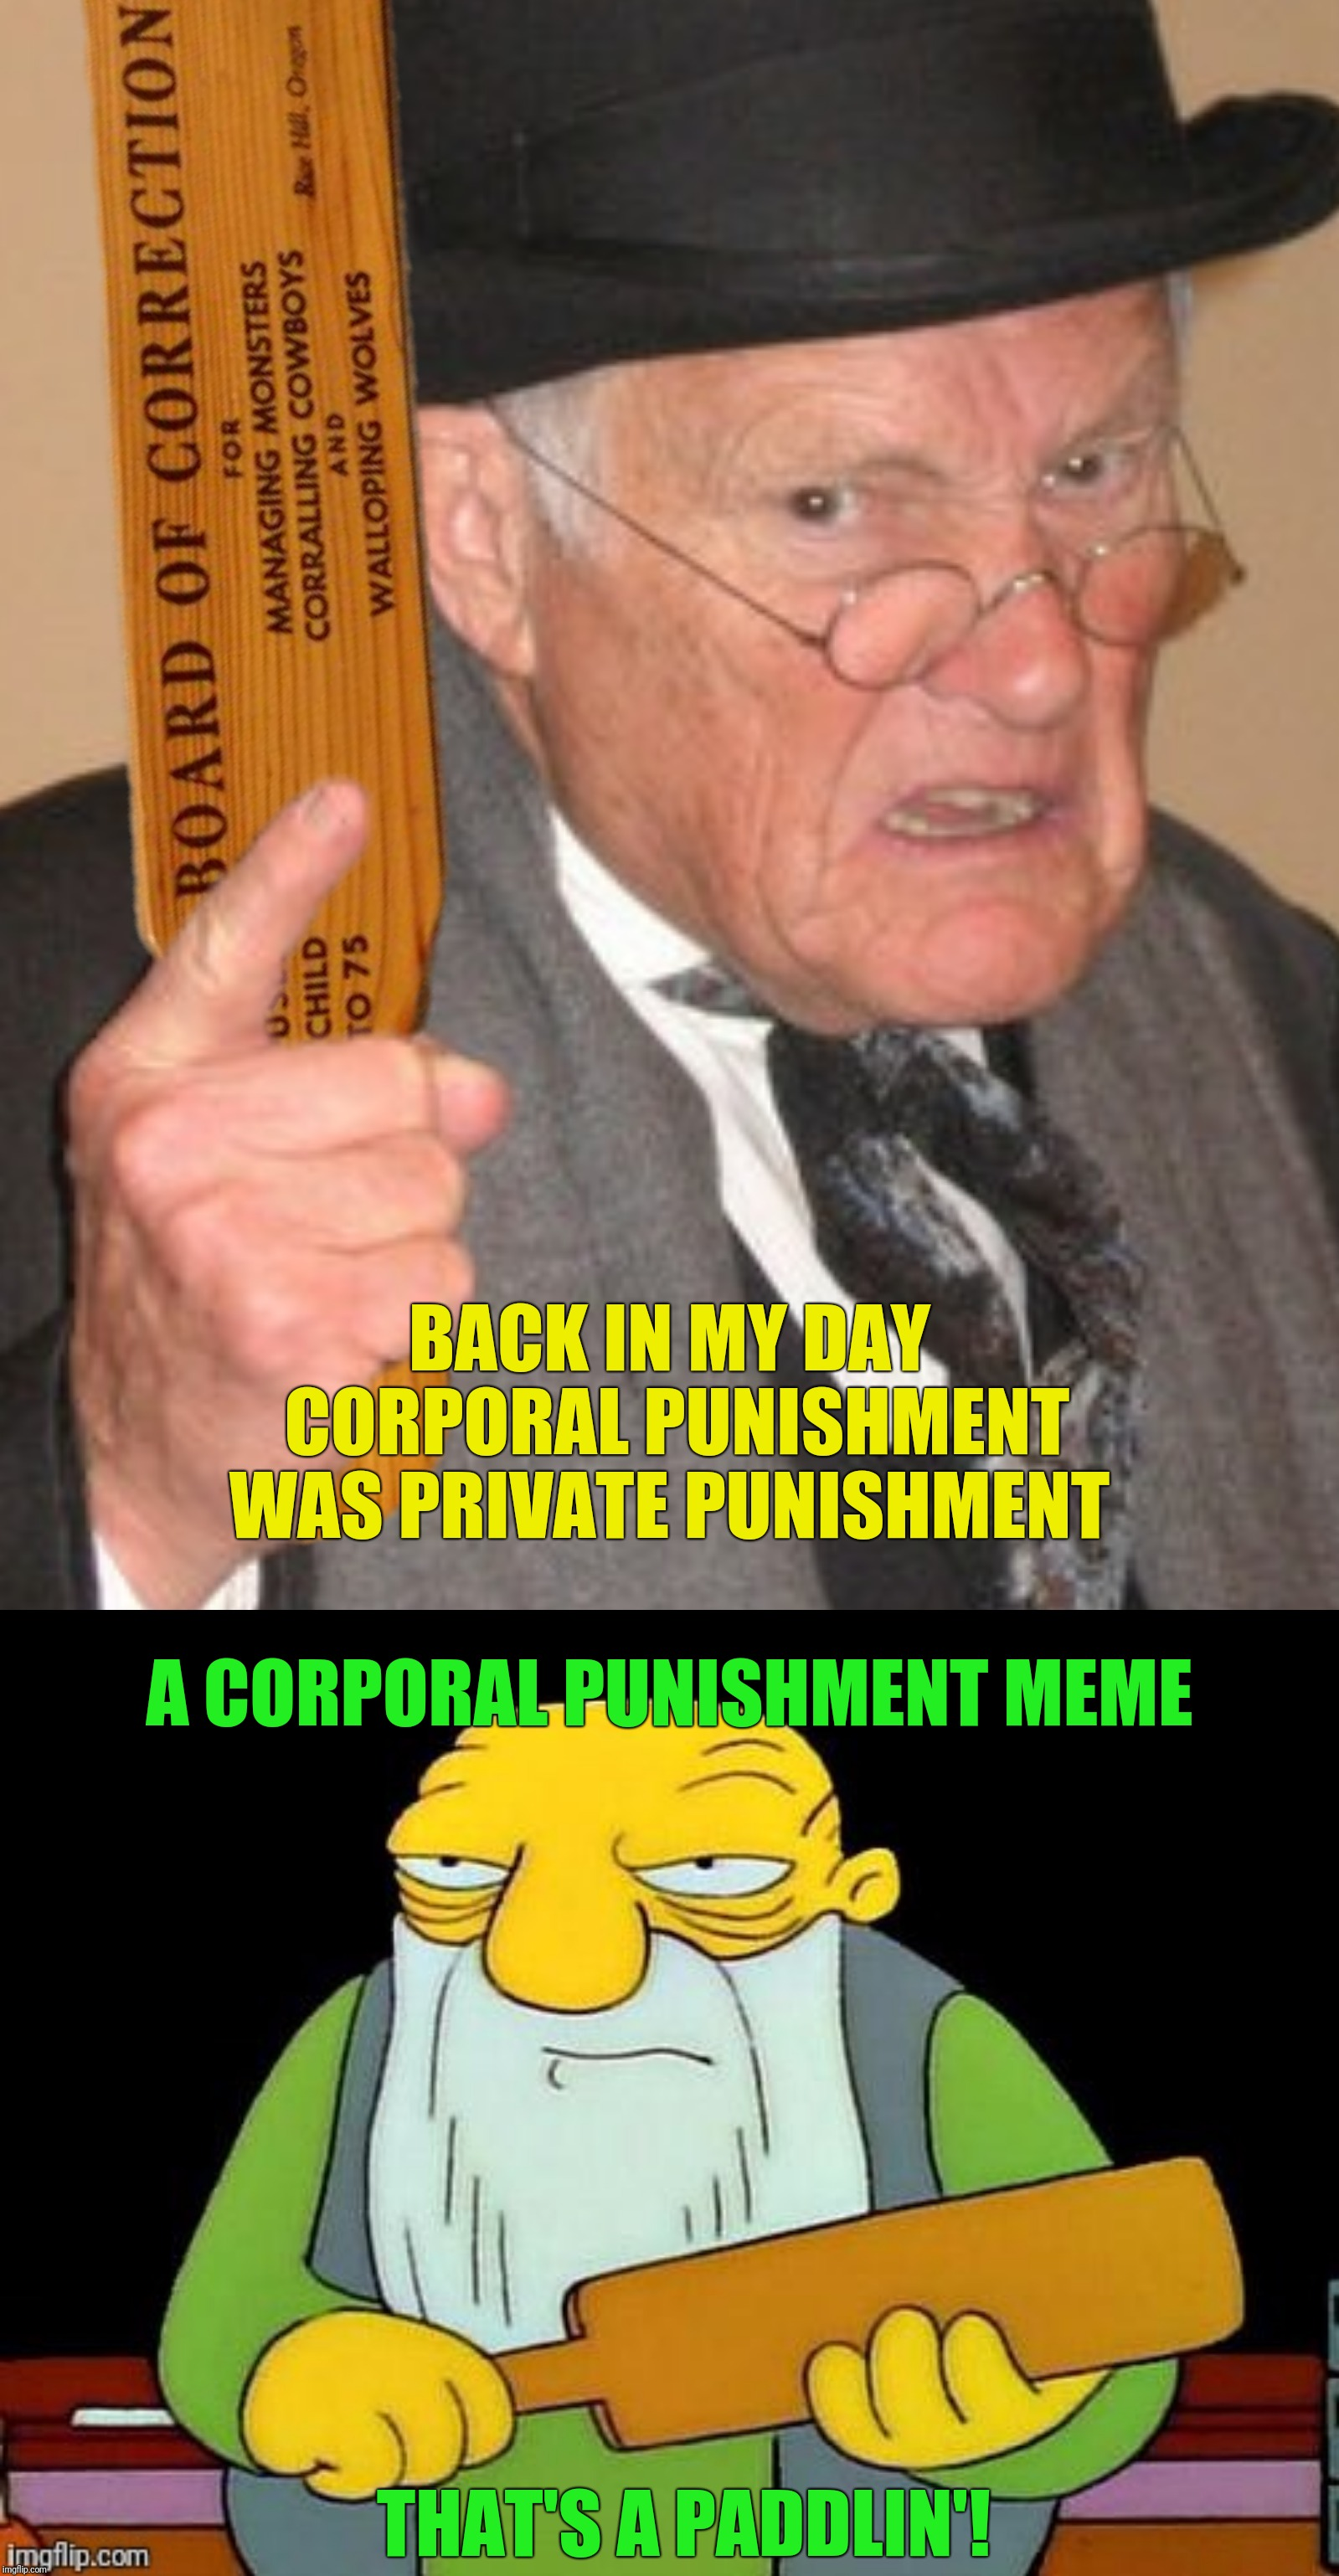 Bad Photoshop Sunday presents:  Brace yourselves, Major Punishment is coming!  Inspired by a FrankJames3 meme. | BACK IN MY DAY CORPORAL PUNISHMENT WAS PRIVATE PUNISHMENT A CORPORAL PUNISHMENT MEME THAT'S A PADDLIN'! | image tagged in bad photoshop sunday,back in my day,simpsons,that's a paddlin' | made w/ Imgflip meme maker